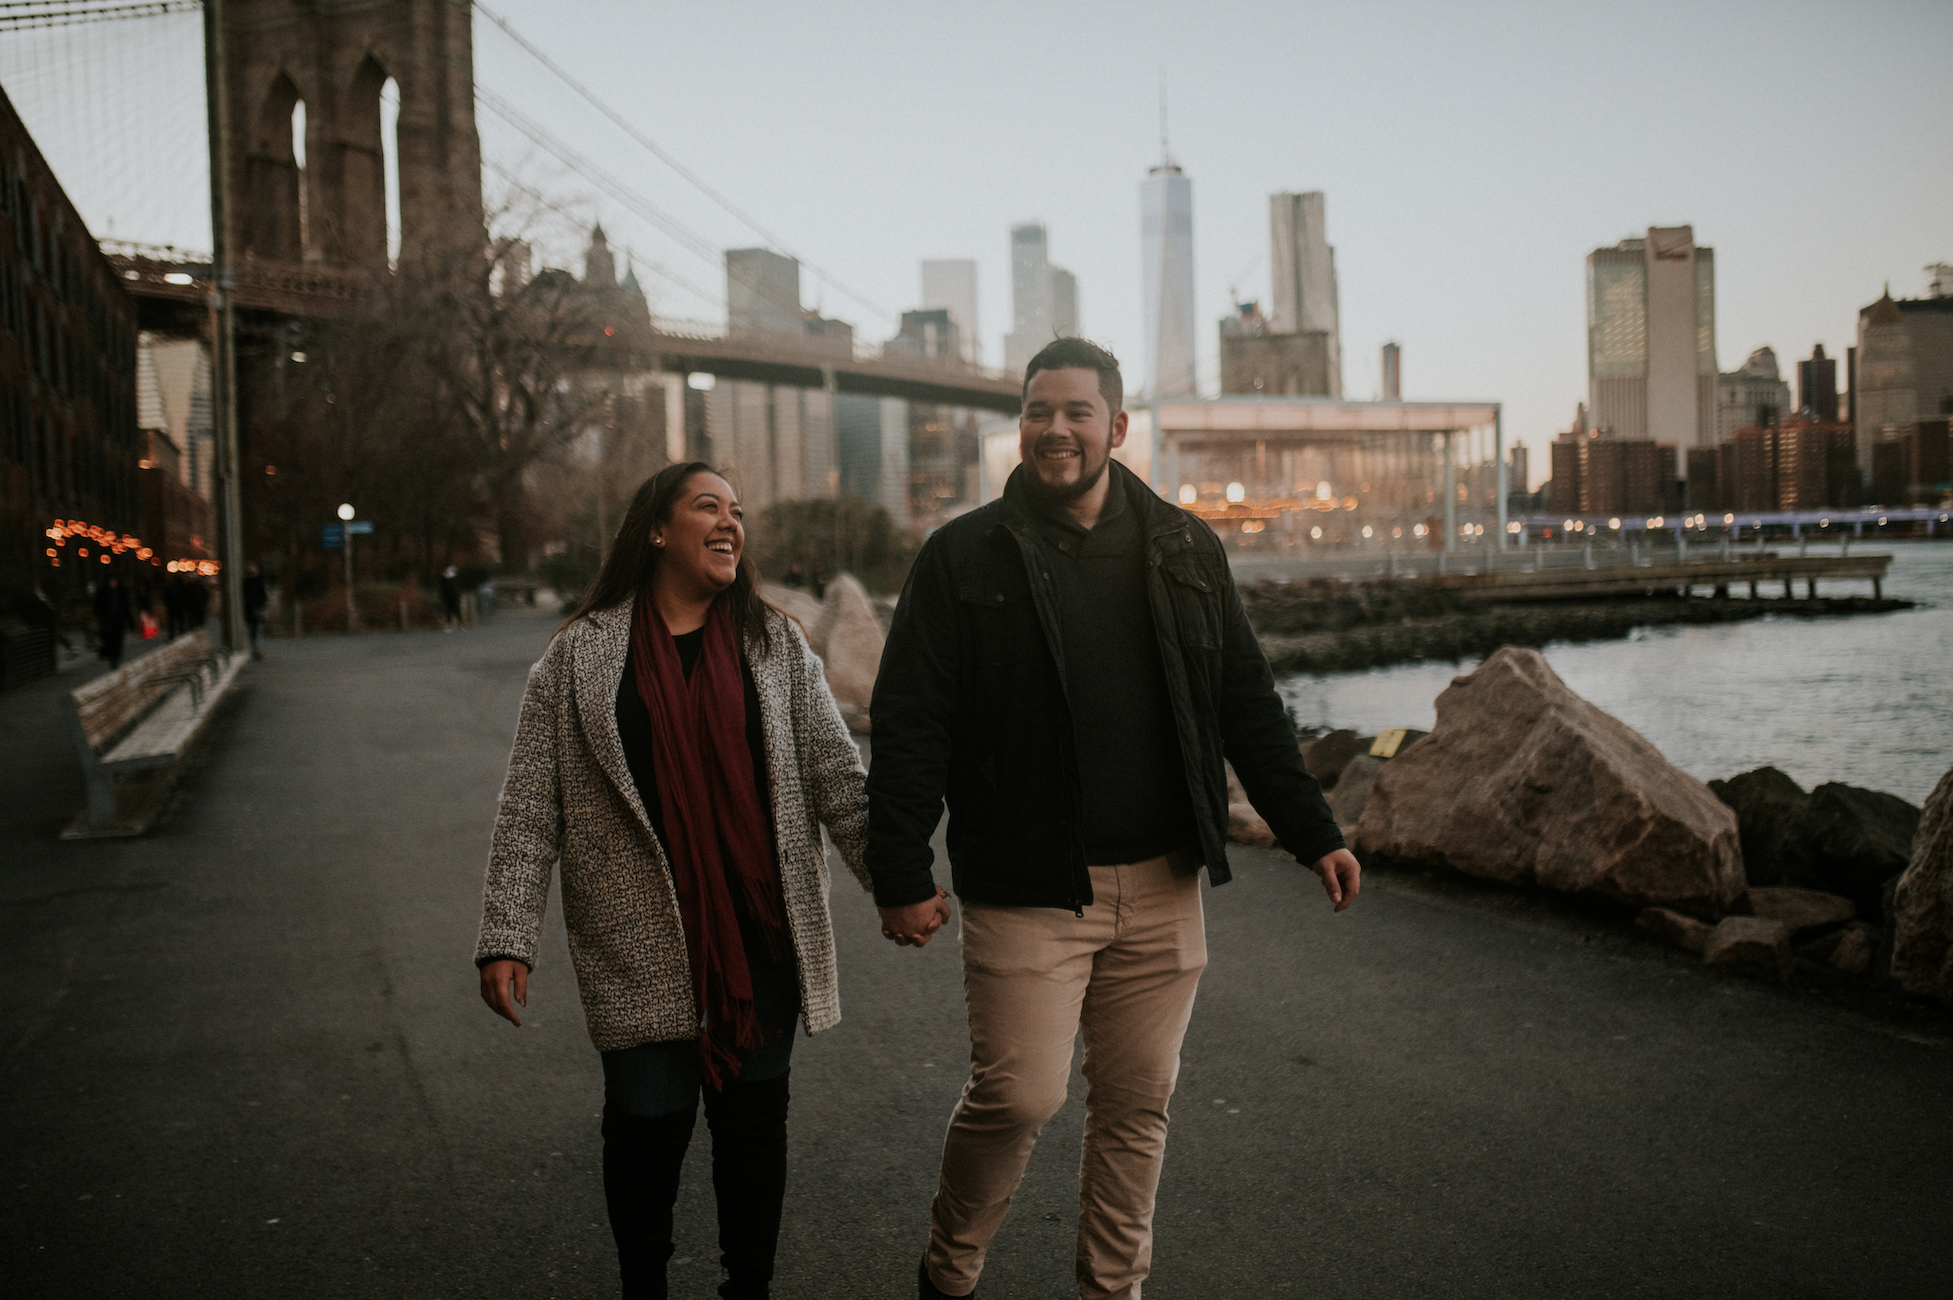 Ashley-Chris-Brooklyn-New-York-Engagement-Photographer-13